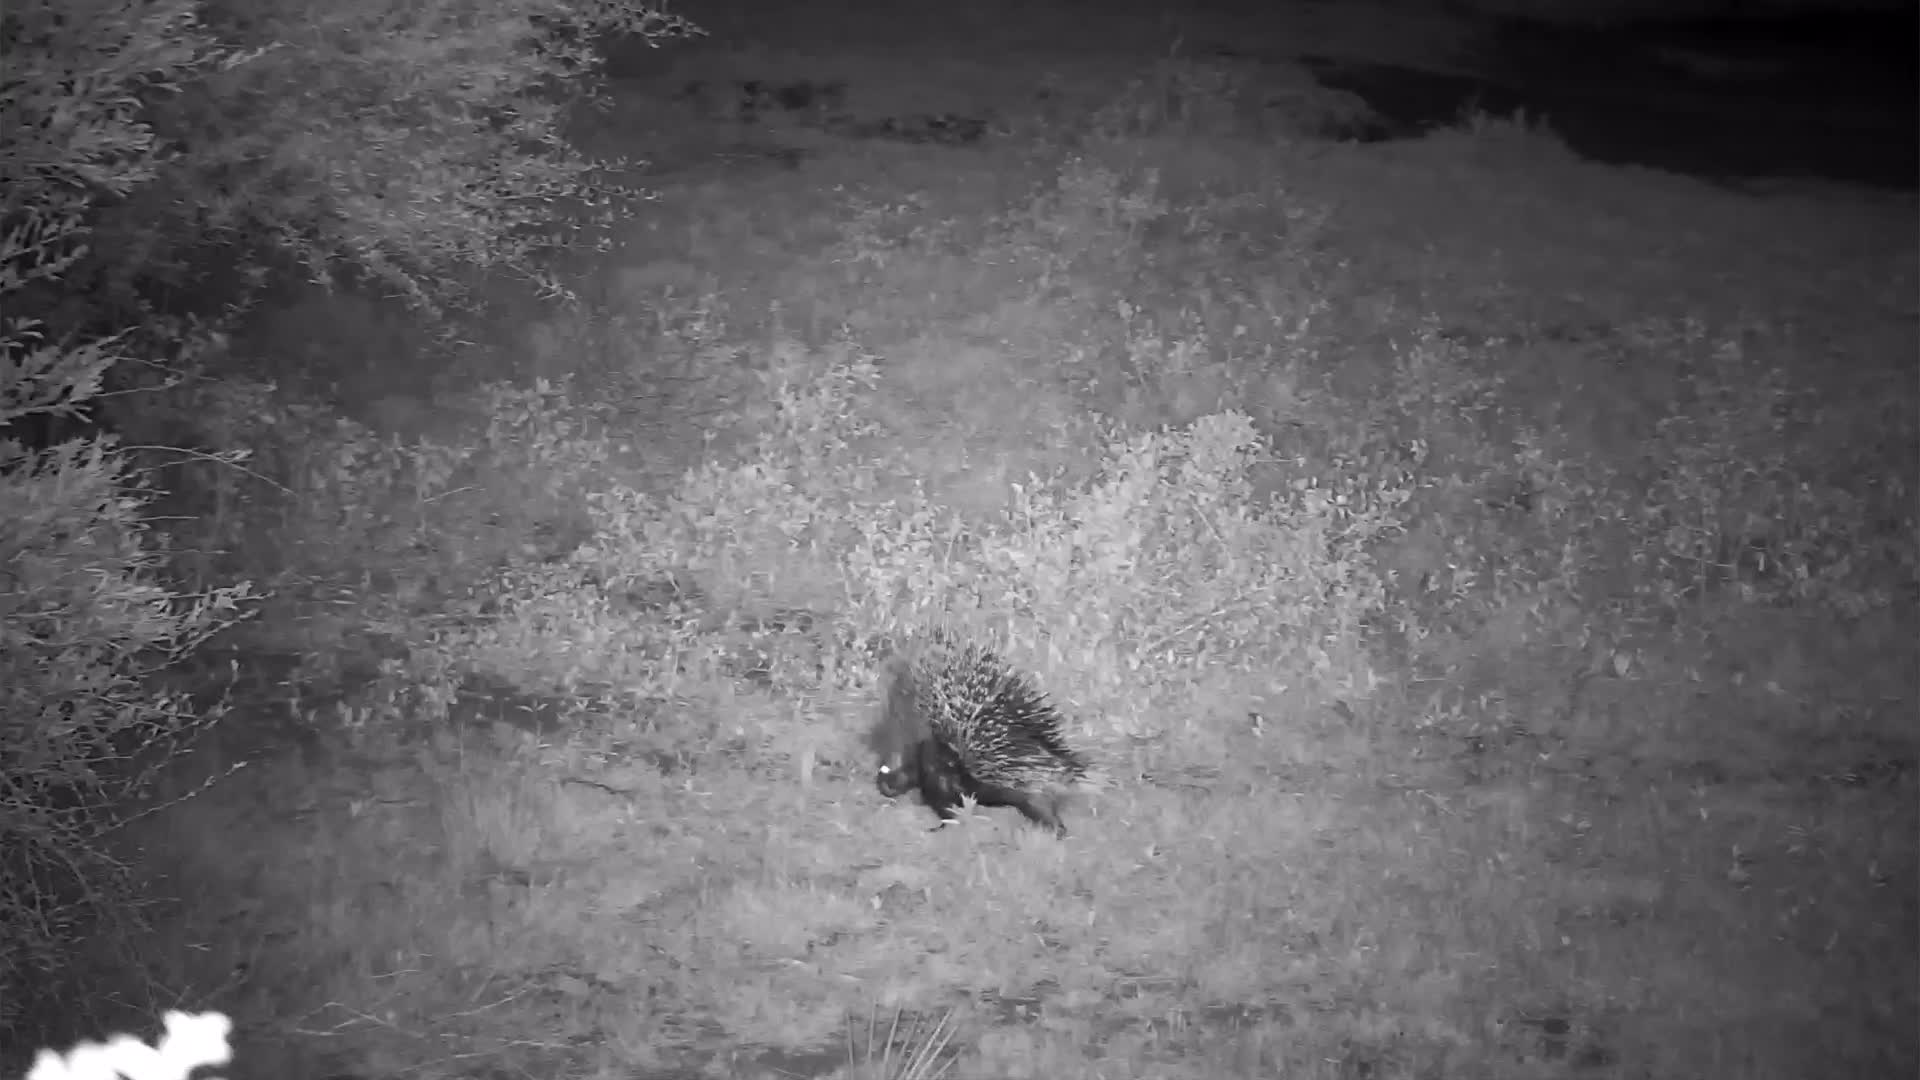 VIDEO:  Quick moving Porcupine